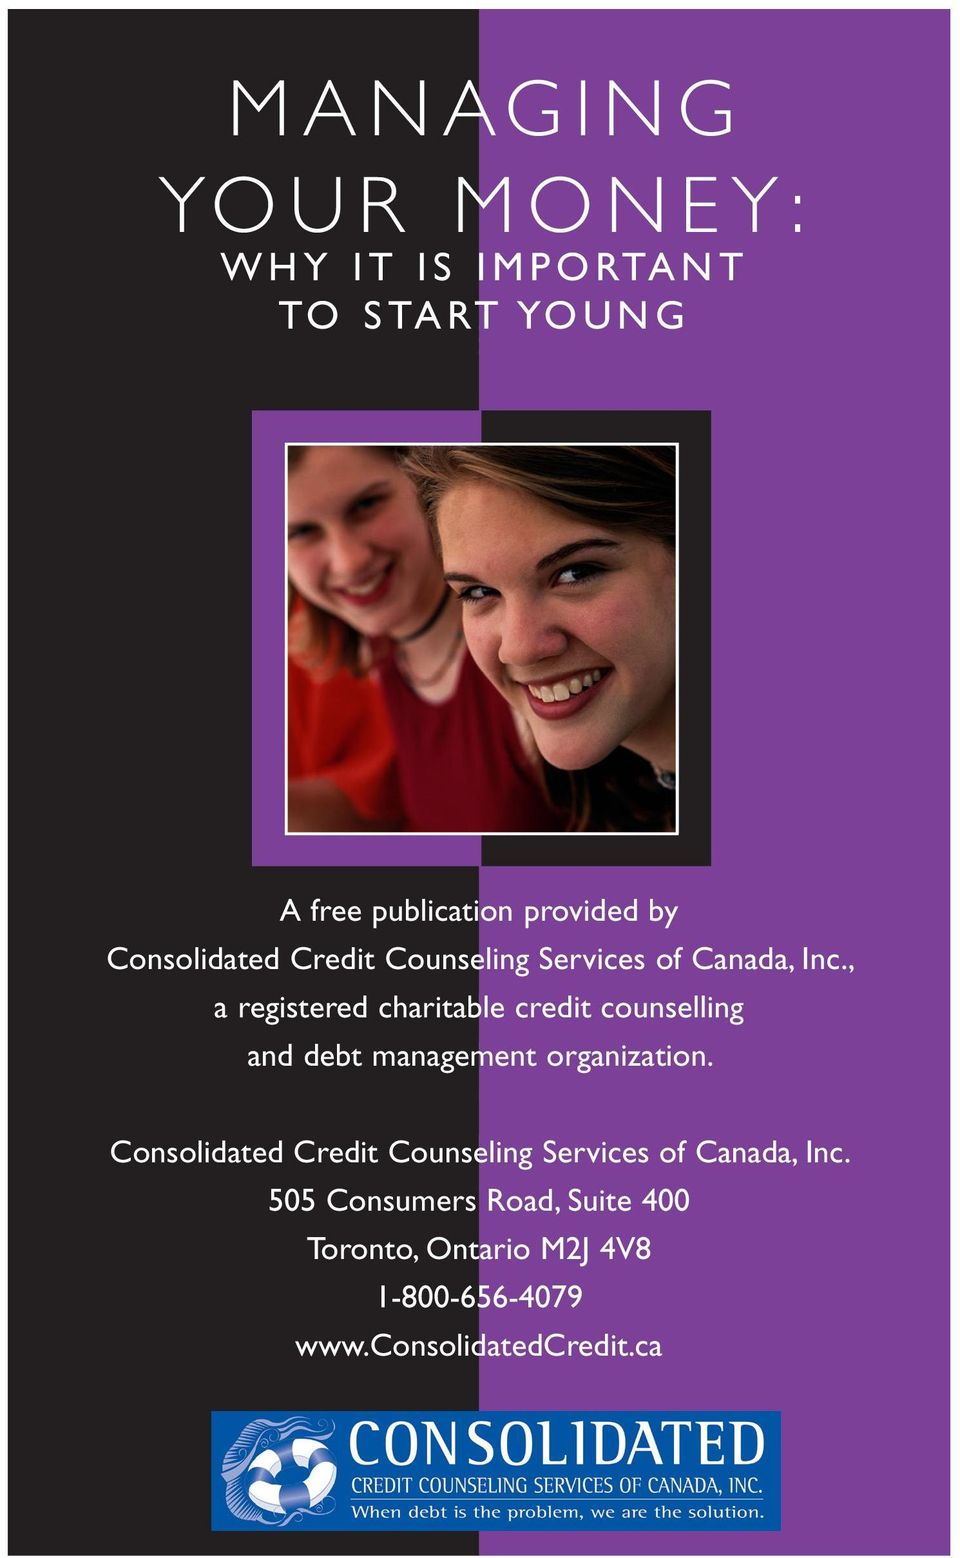 Consolidated Credit Counseling Services, Inc. is an organization and debt management organization.